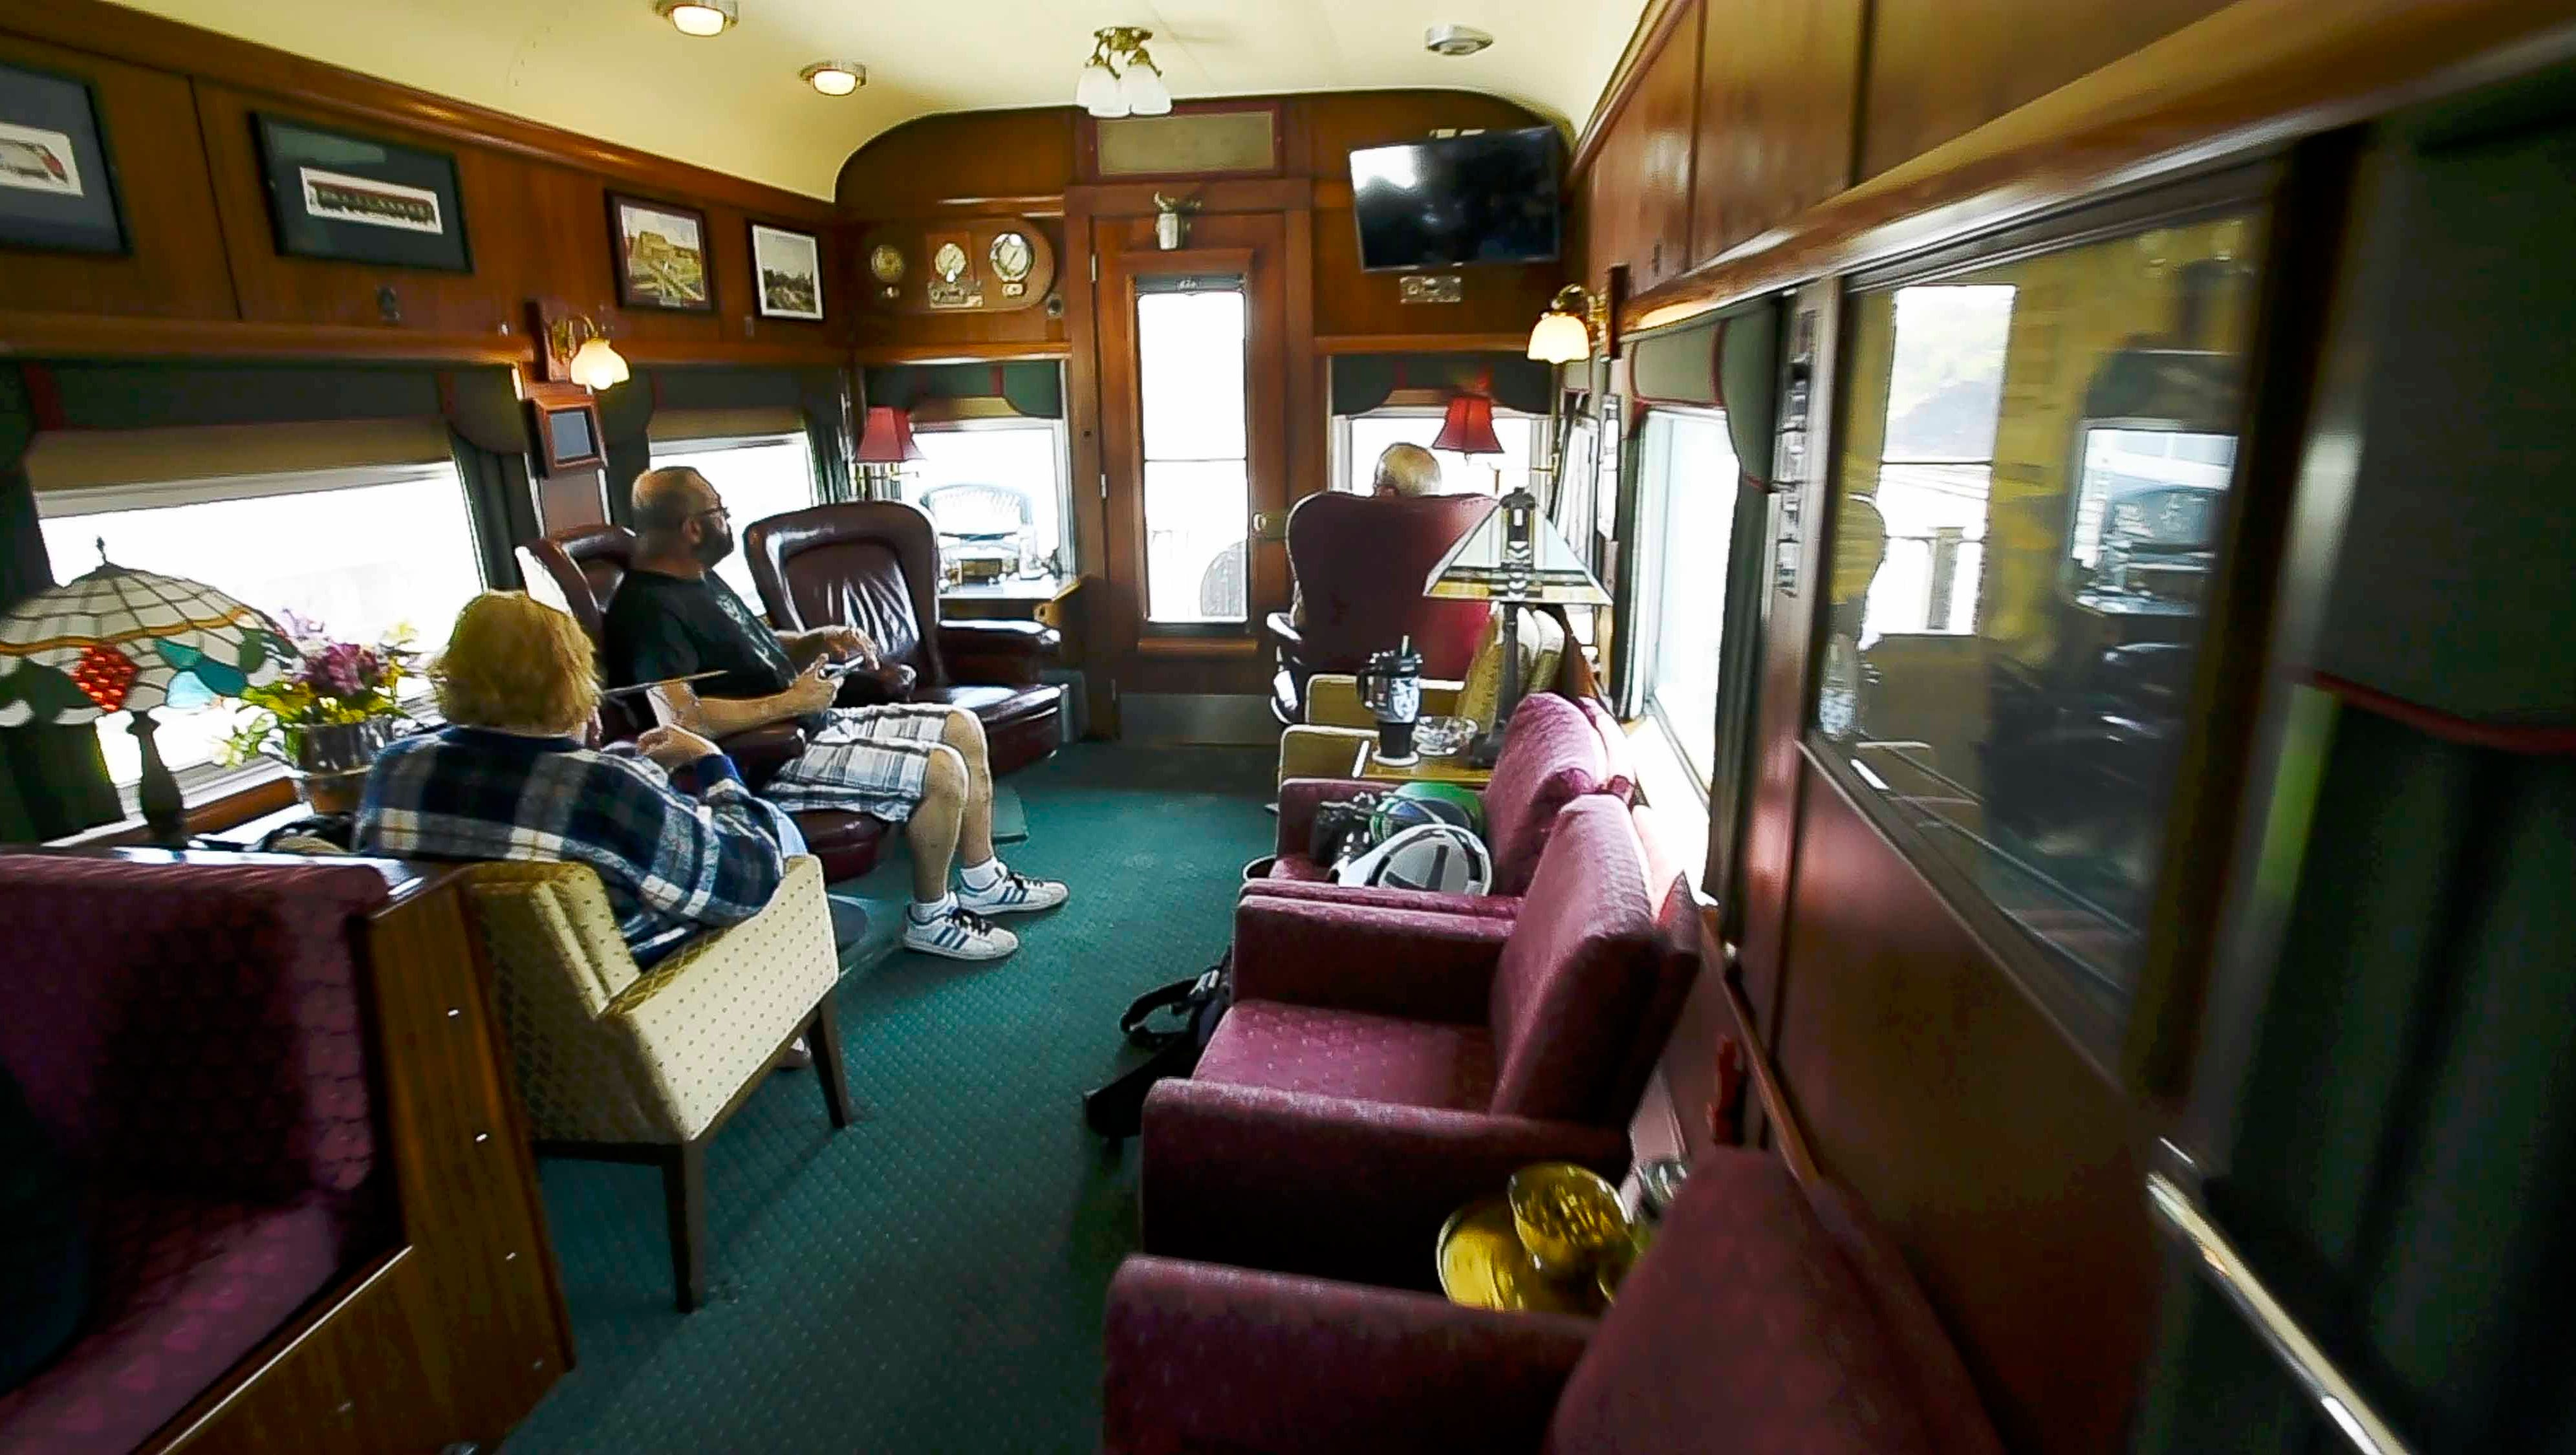 private train cars  a look inside these ritzy digs